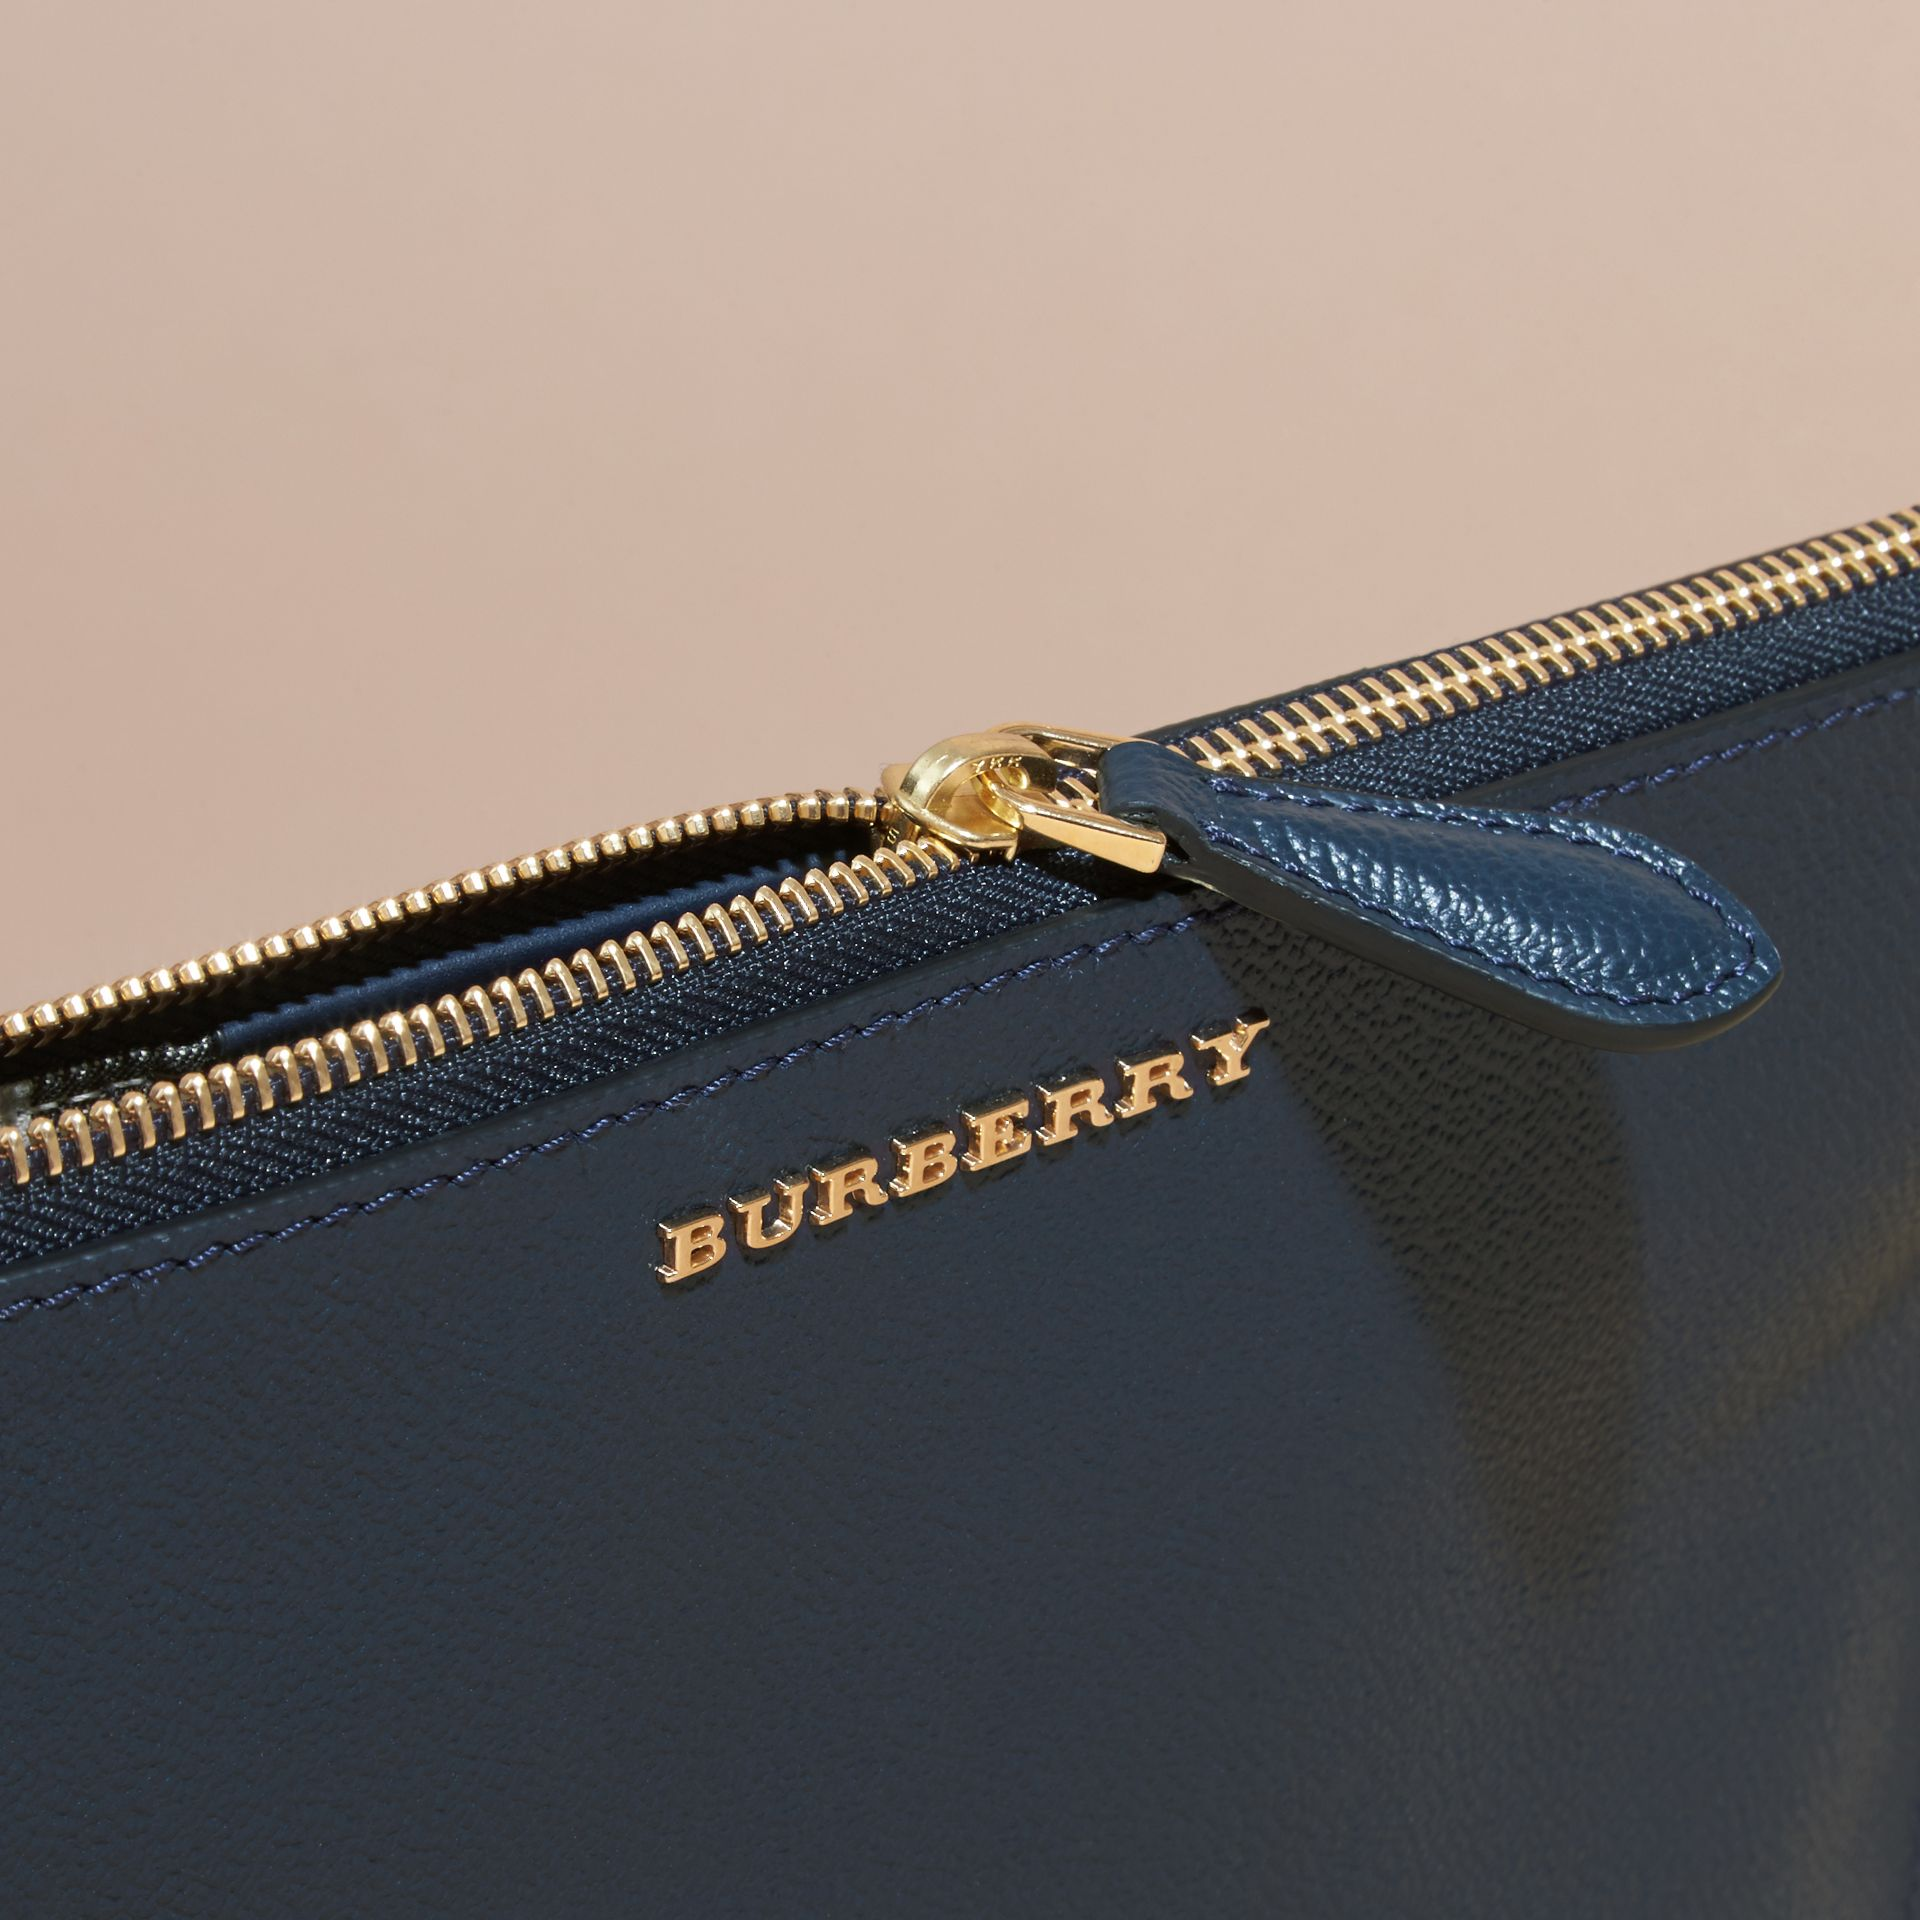 Leather Clutch Bag with Check Lining in Blue Carbon - gallery image 2